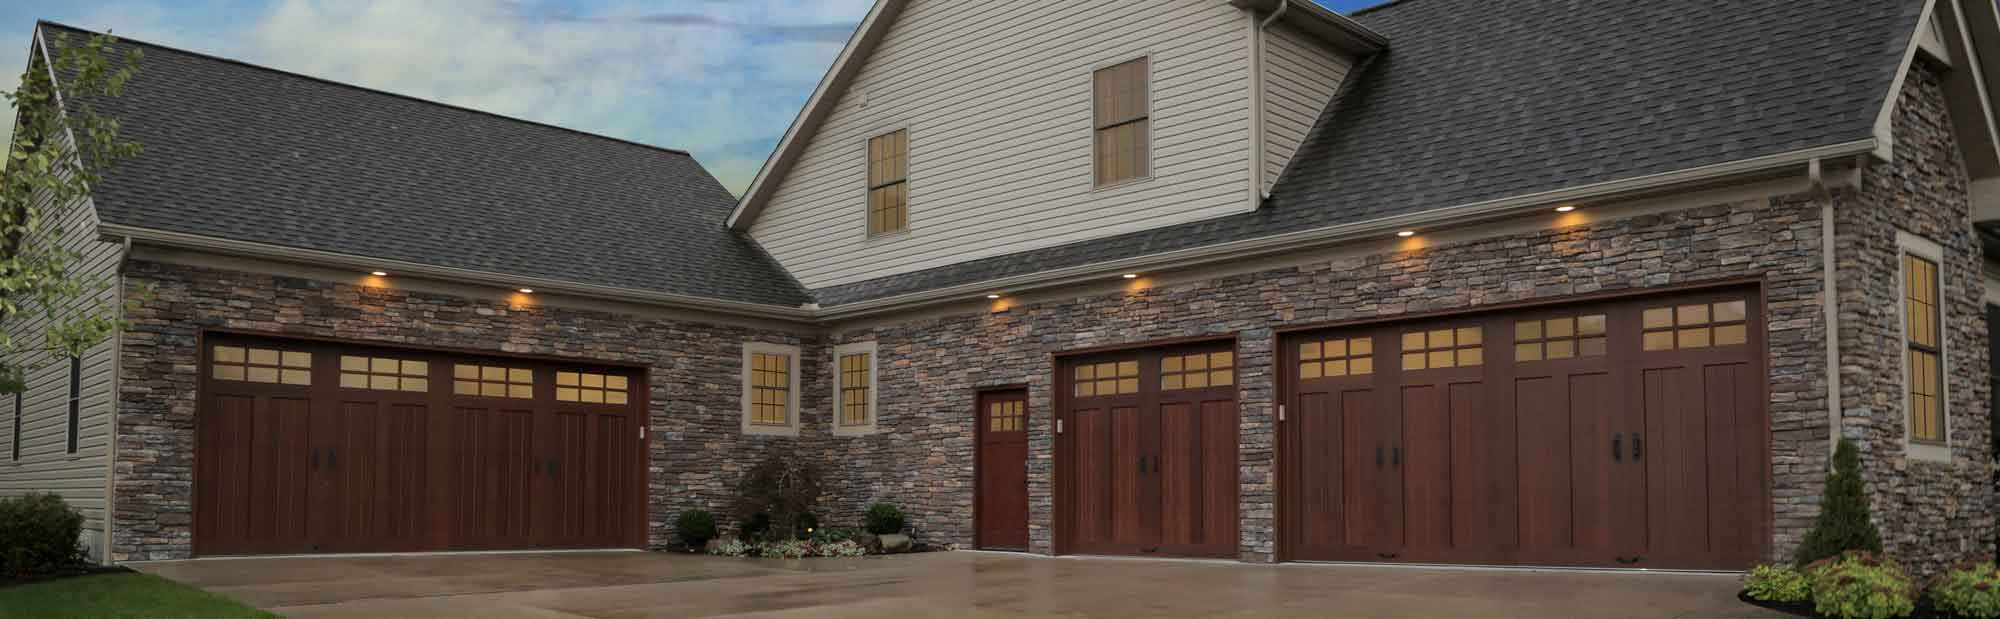 Whitby Garage Doors is built on great relationships